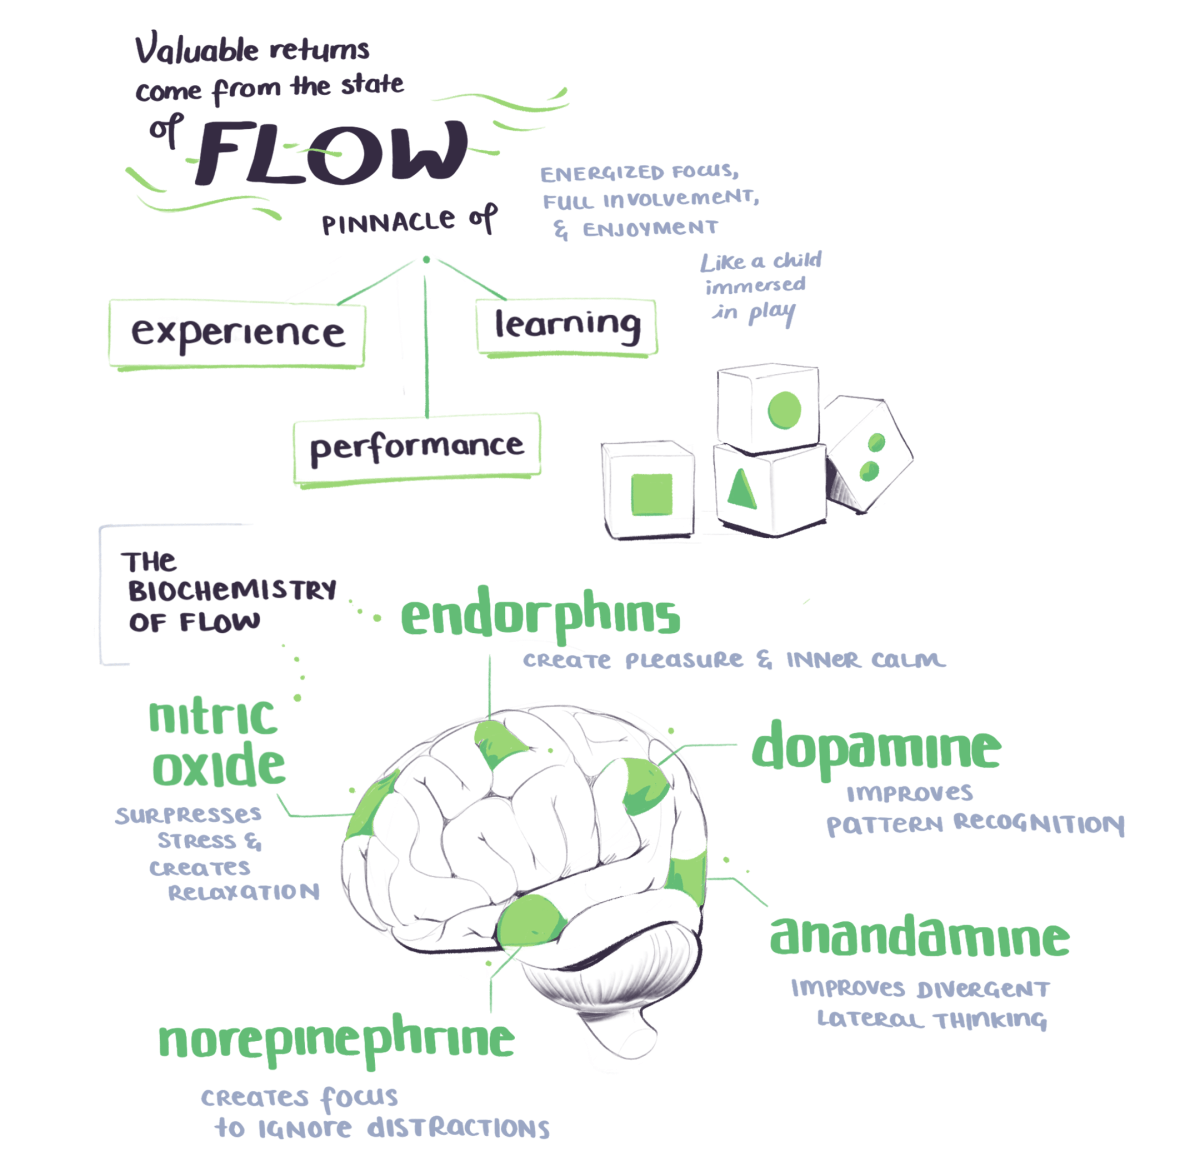 BASB sketchnotes on flow state as the pinnacle of experience, learning, and performance. As well as the biochemistry of flow state.